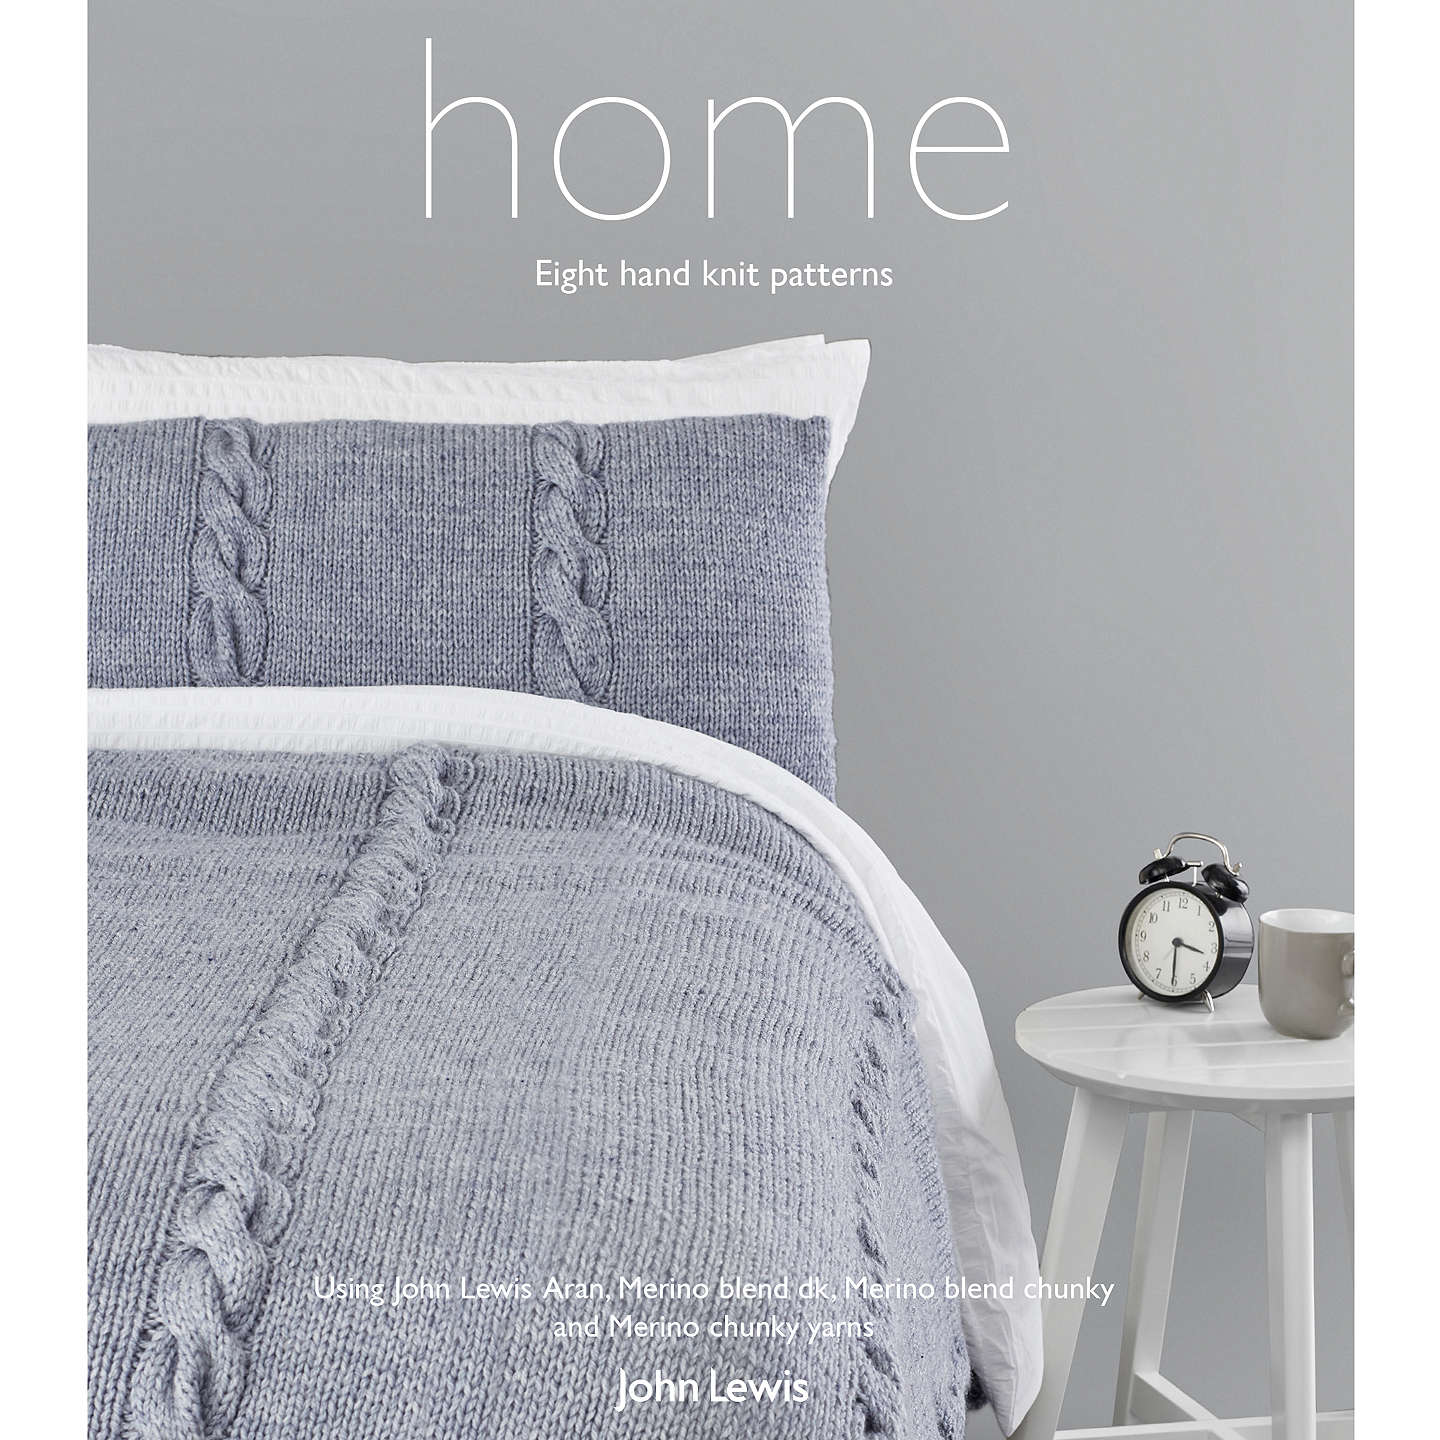 John Lewis Home Knitting Pattern Book at John Lewis